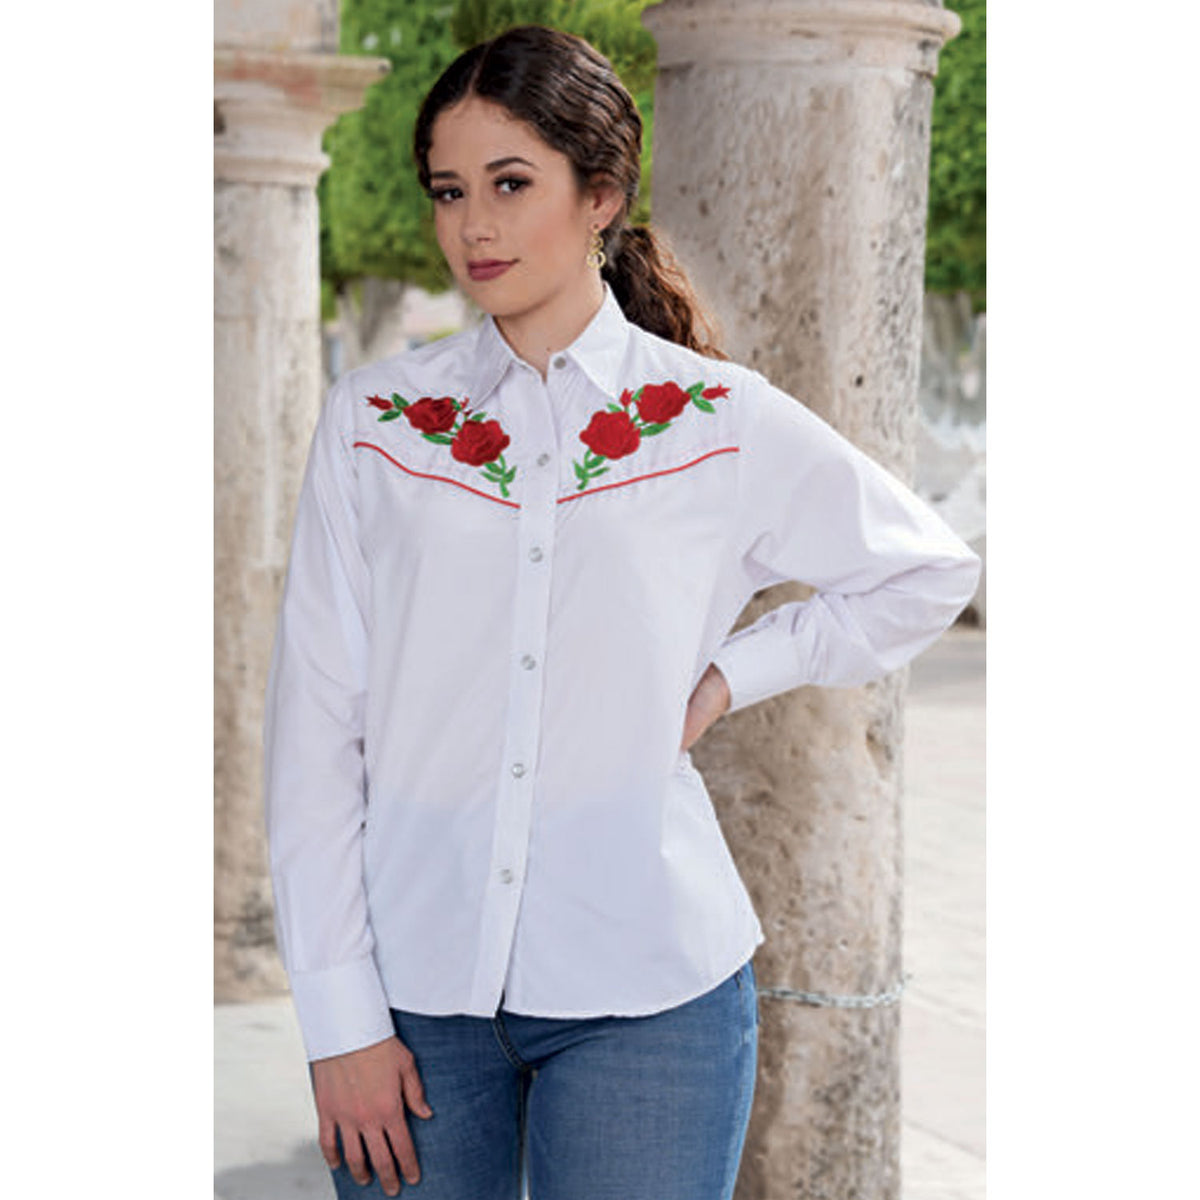 Women's Western Shirt WD591-592